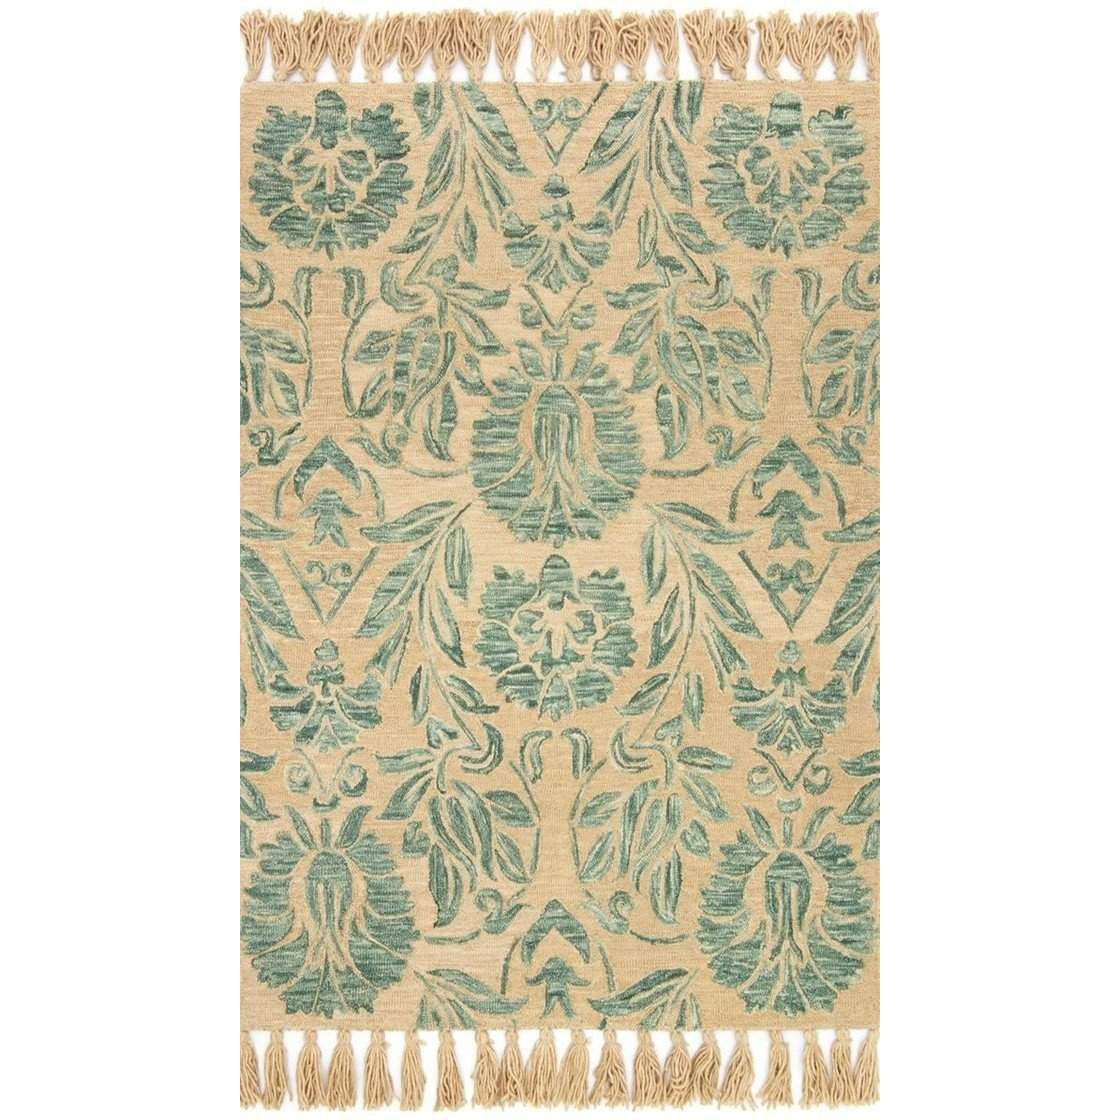 Joanna Gaines Jozie Day Rug Collection - JG-01 AQUA